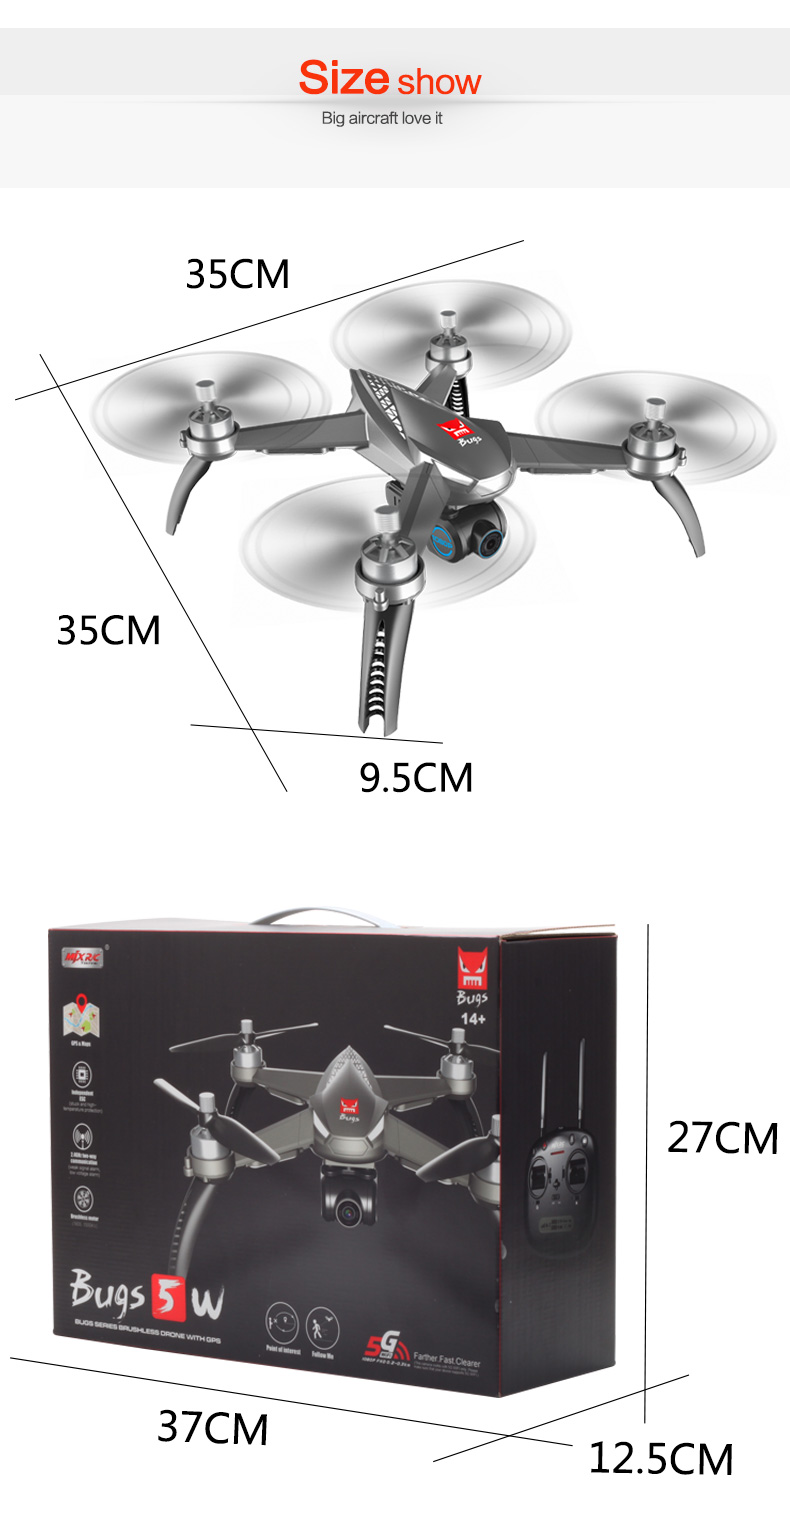 17.MJX Bugs 5 W B5W RC Drone RTF 5G WiFi FPV 1080P Camera With GPS Follow Me Mode RC Quadcopter vs MJX Bugs 2 B2W Helicopters D30